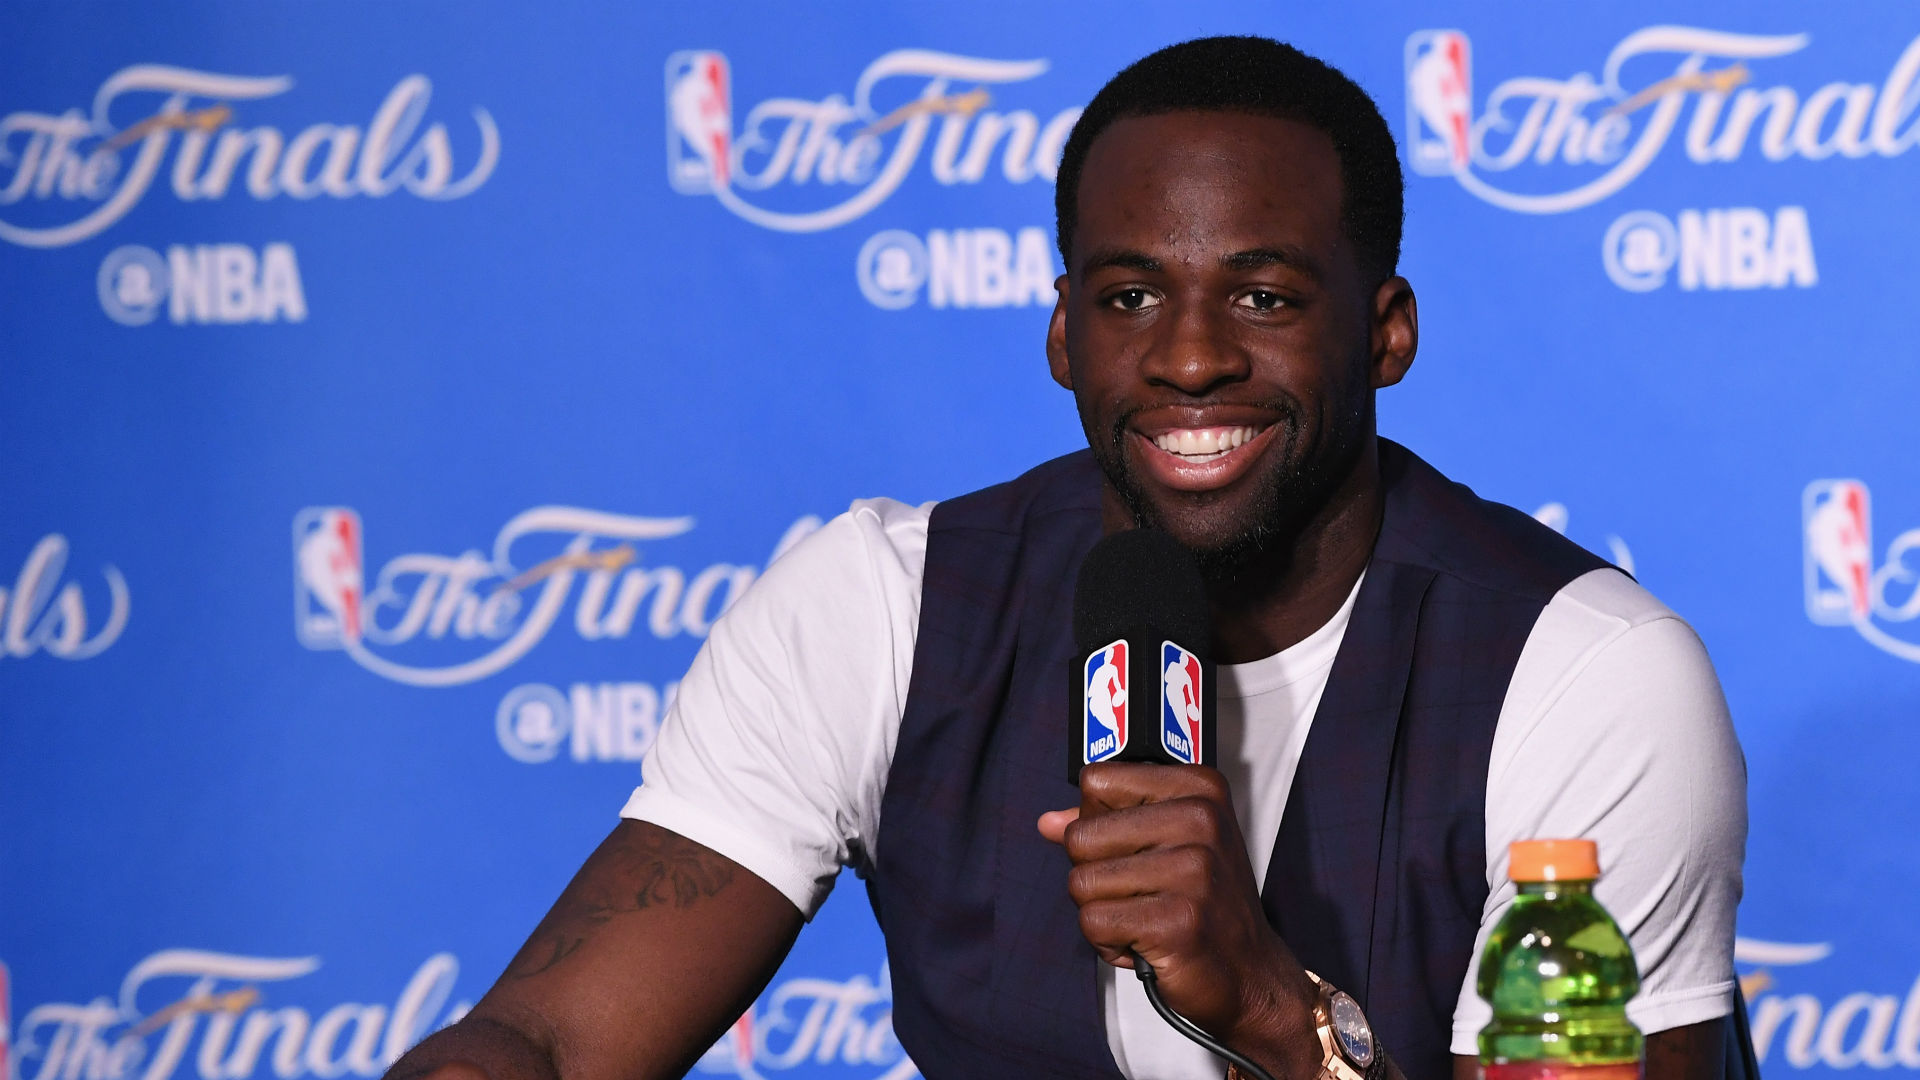 Draymond Green calls out 'rude' Cavs fans after altercation involving his mom